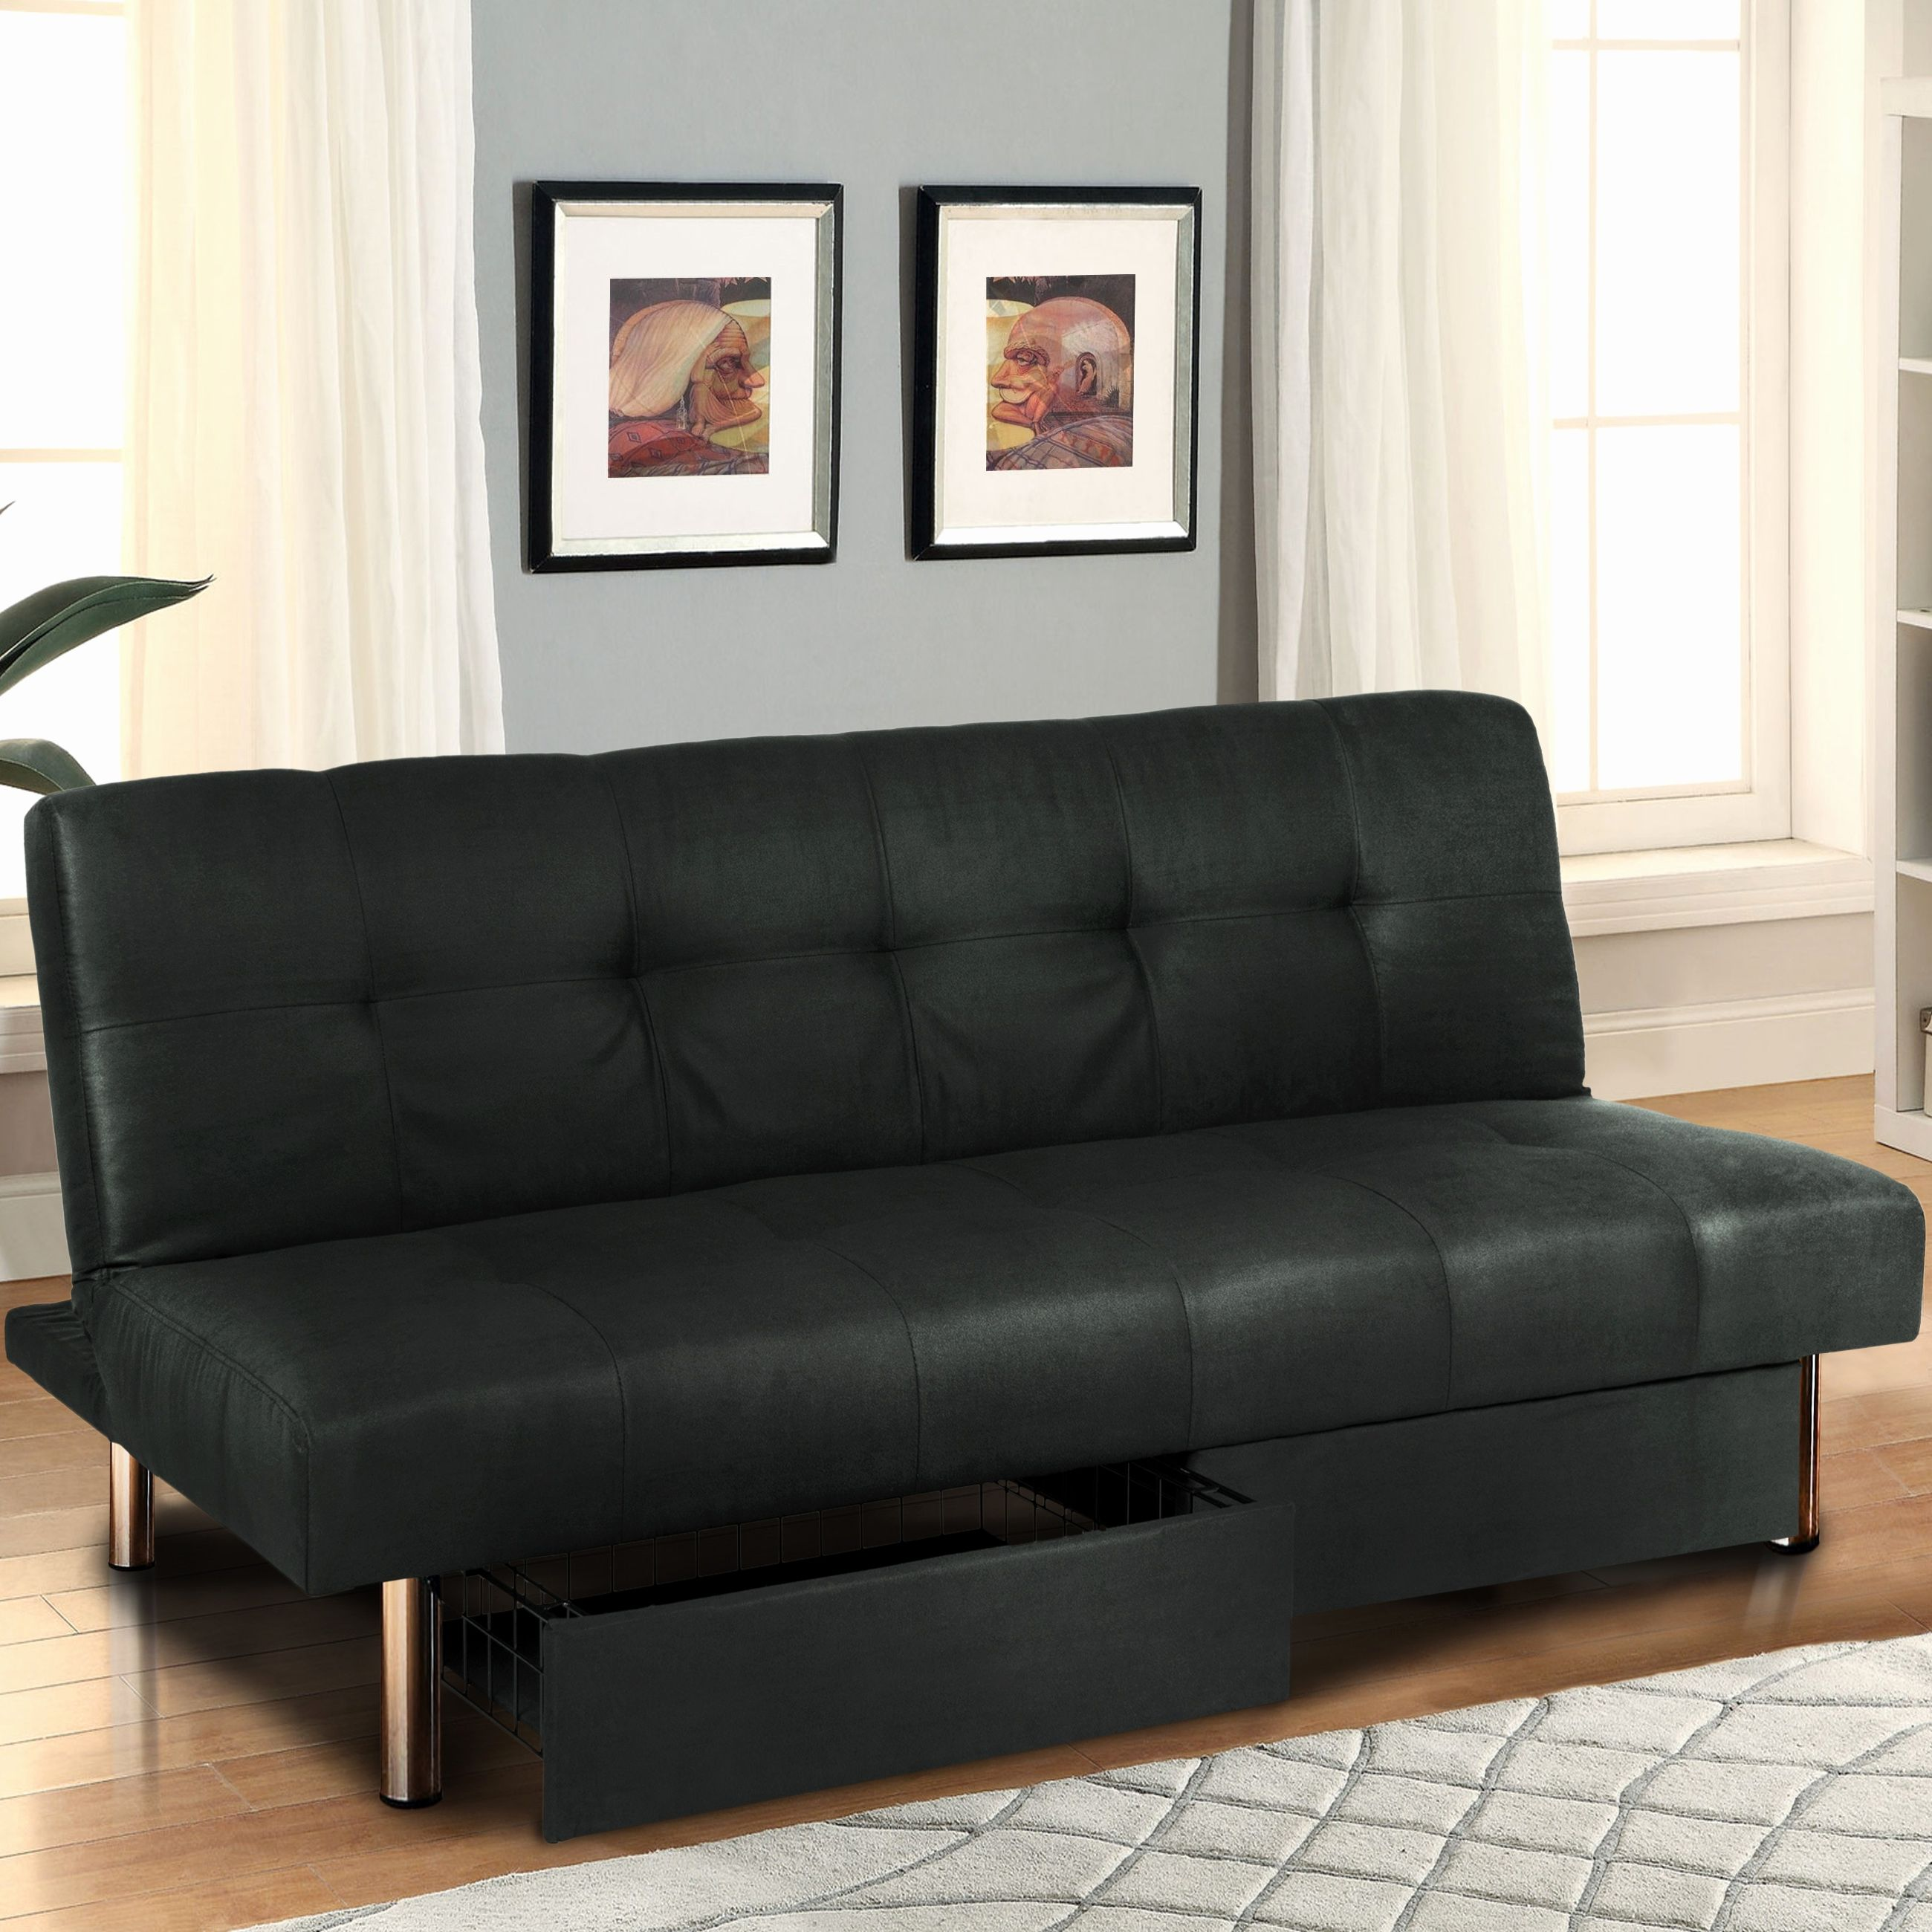 Inspirational Microfiber Faux Leather Sofa Microfiber Faux Leather